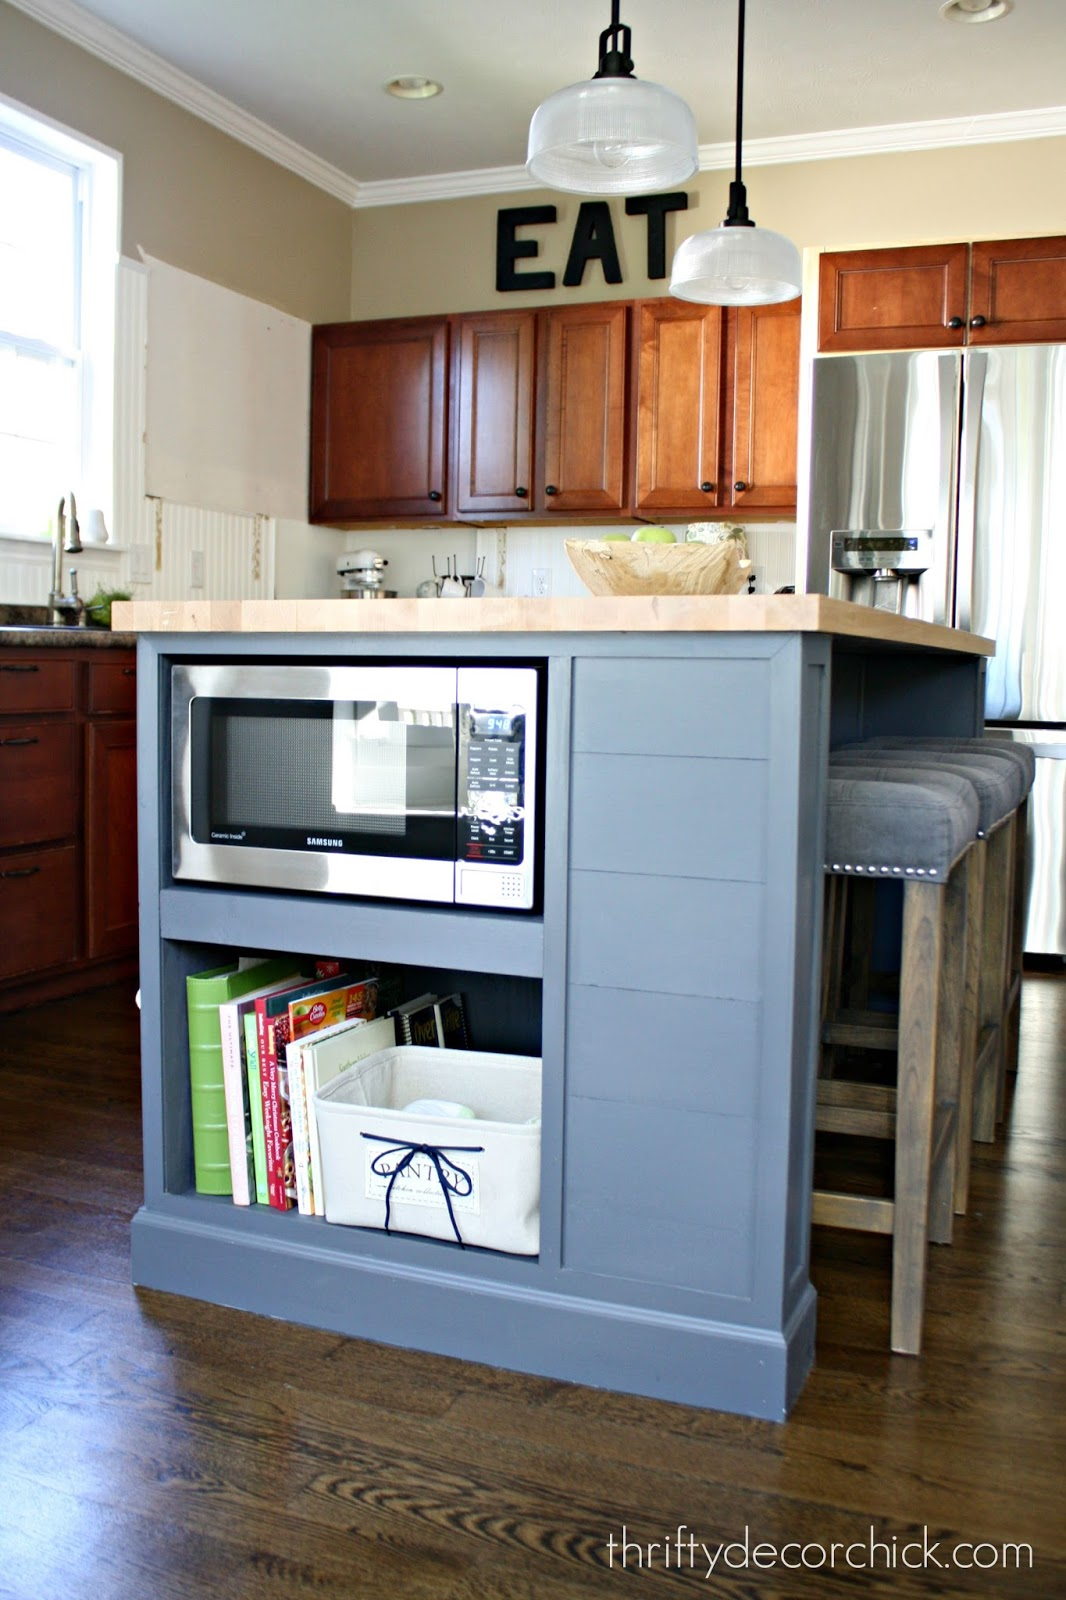 Microwave in the island finally from thrifty decor chick for Built in kitchen islands